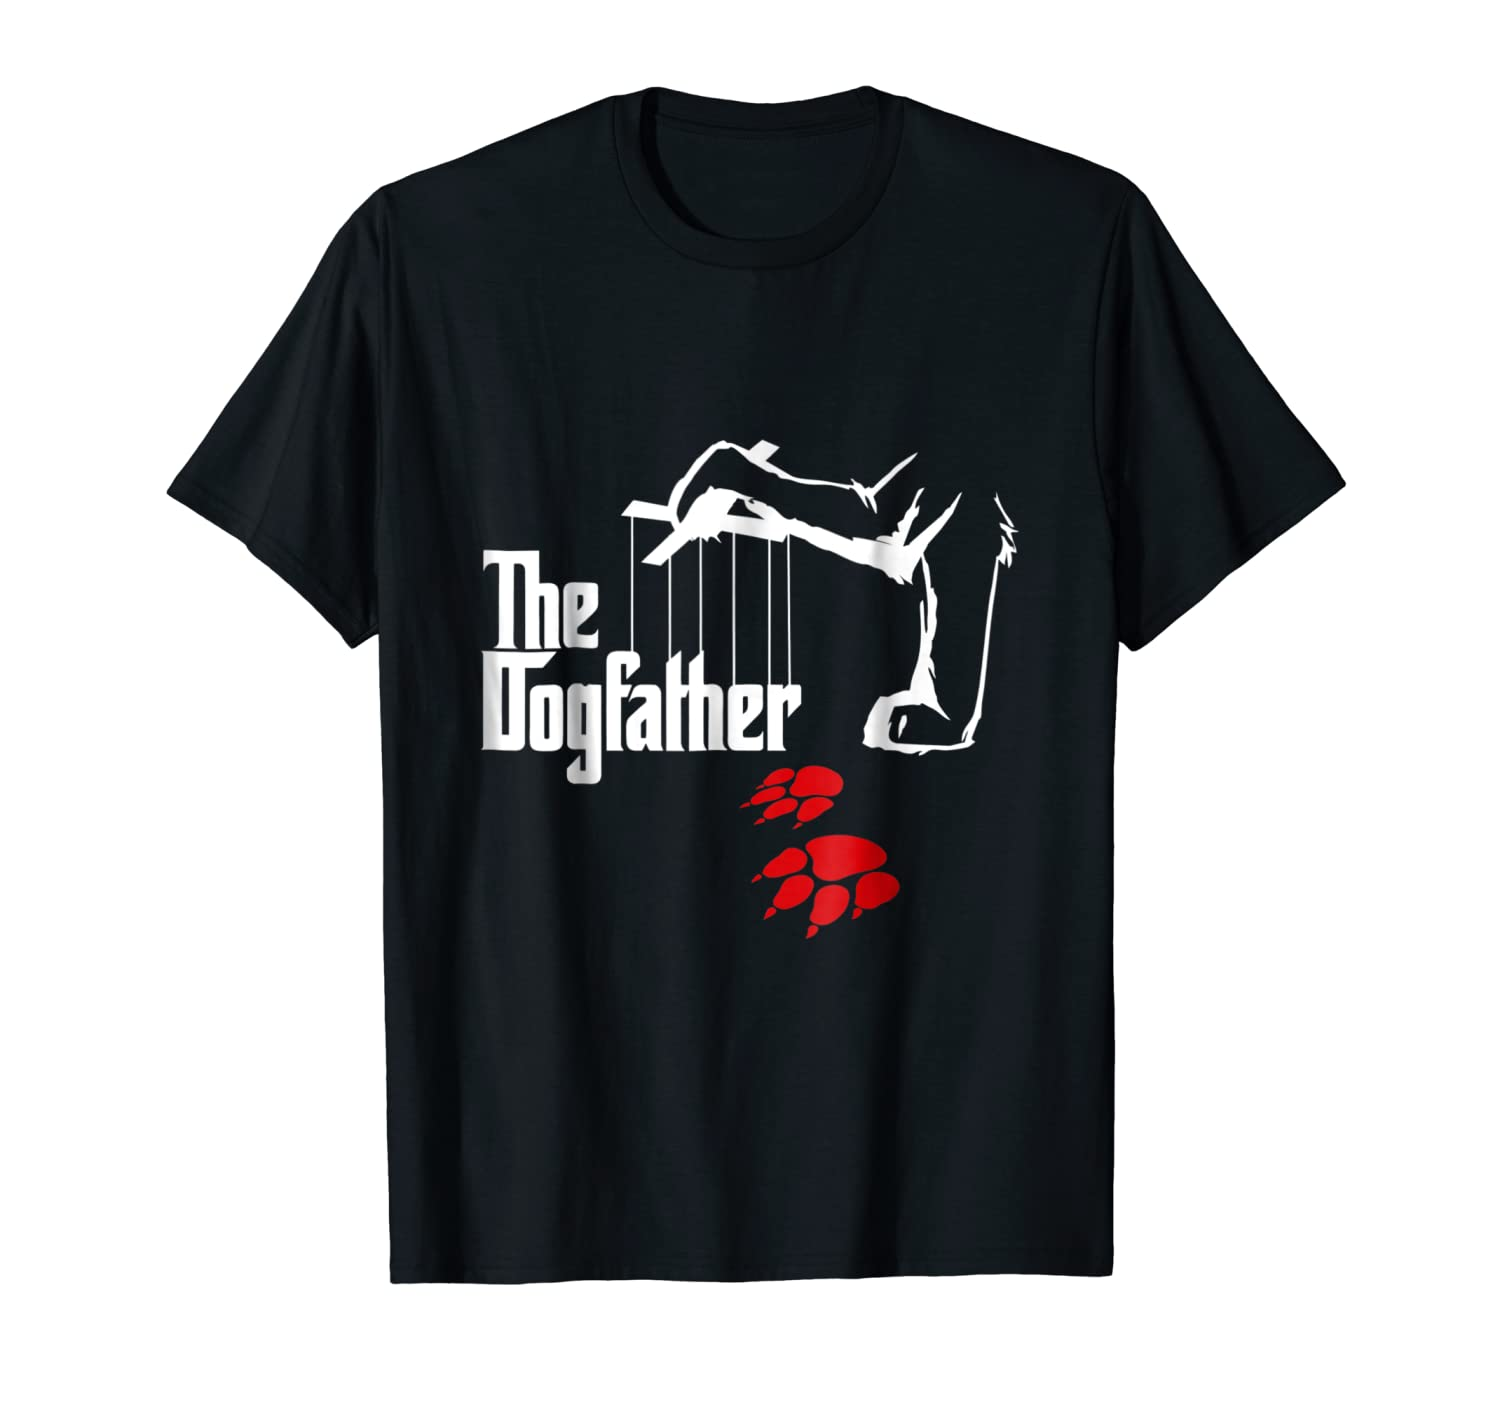 97f43038a Amazon.com: The Dogfather Funny T-Shirt Cool Father's Day Gift: Clothing